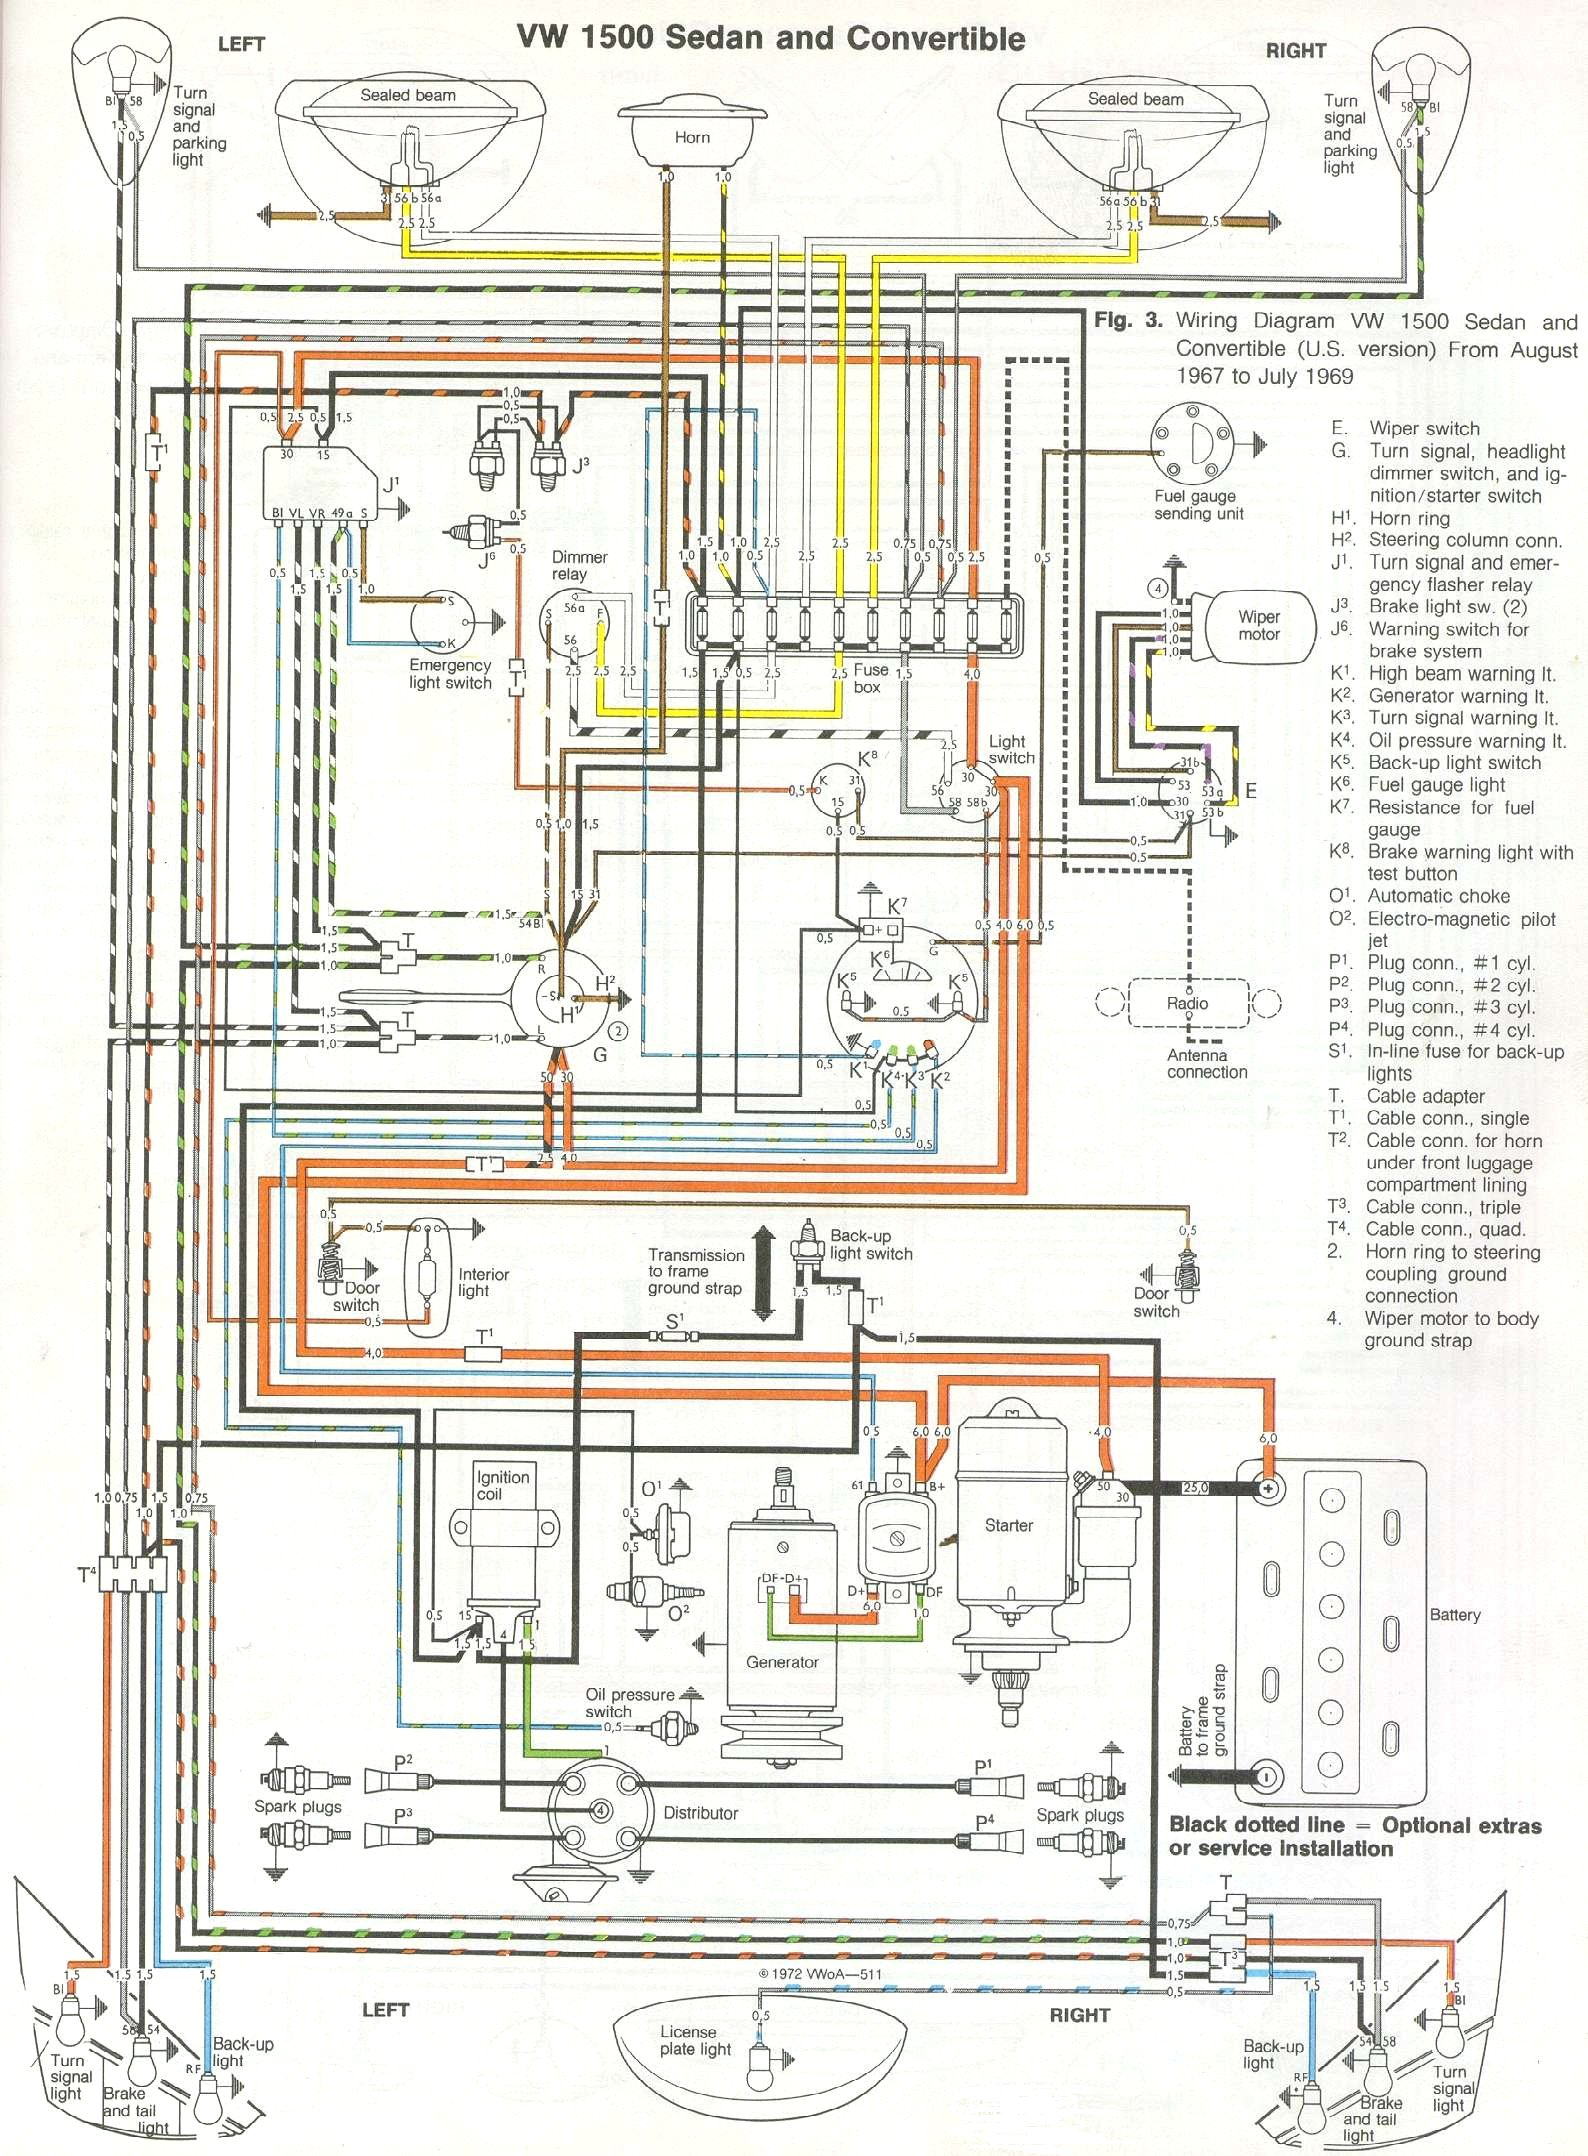 bug_6869 thesamba com type 1 wiring diagrams 1973 vw wiring diagram at reclaimingppi.co